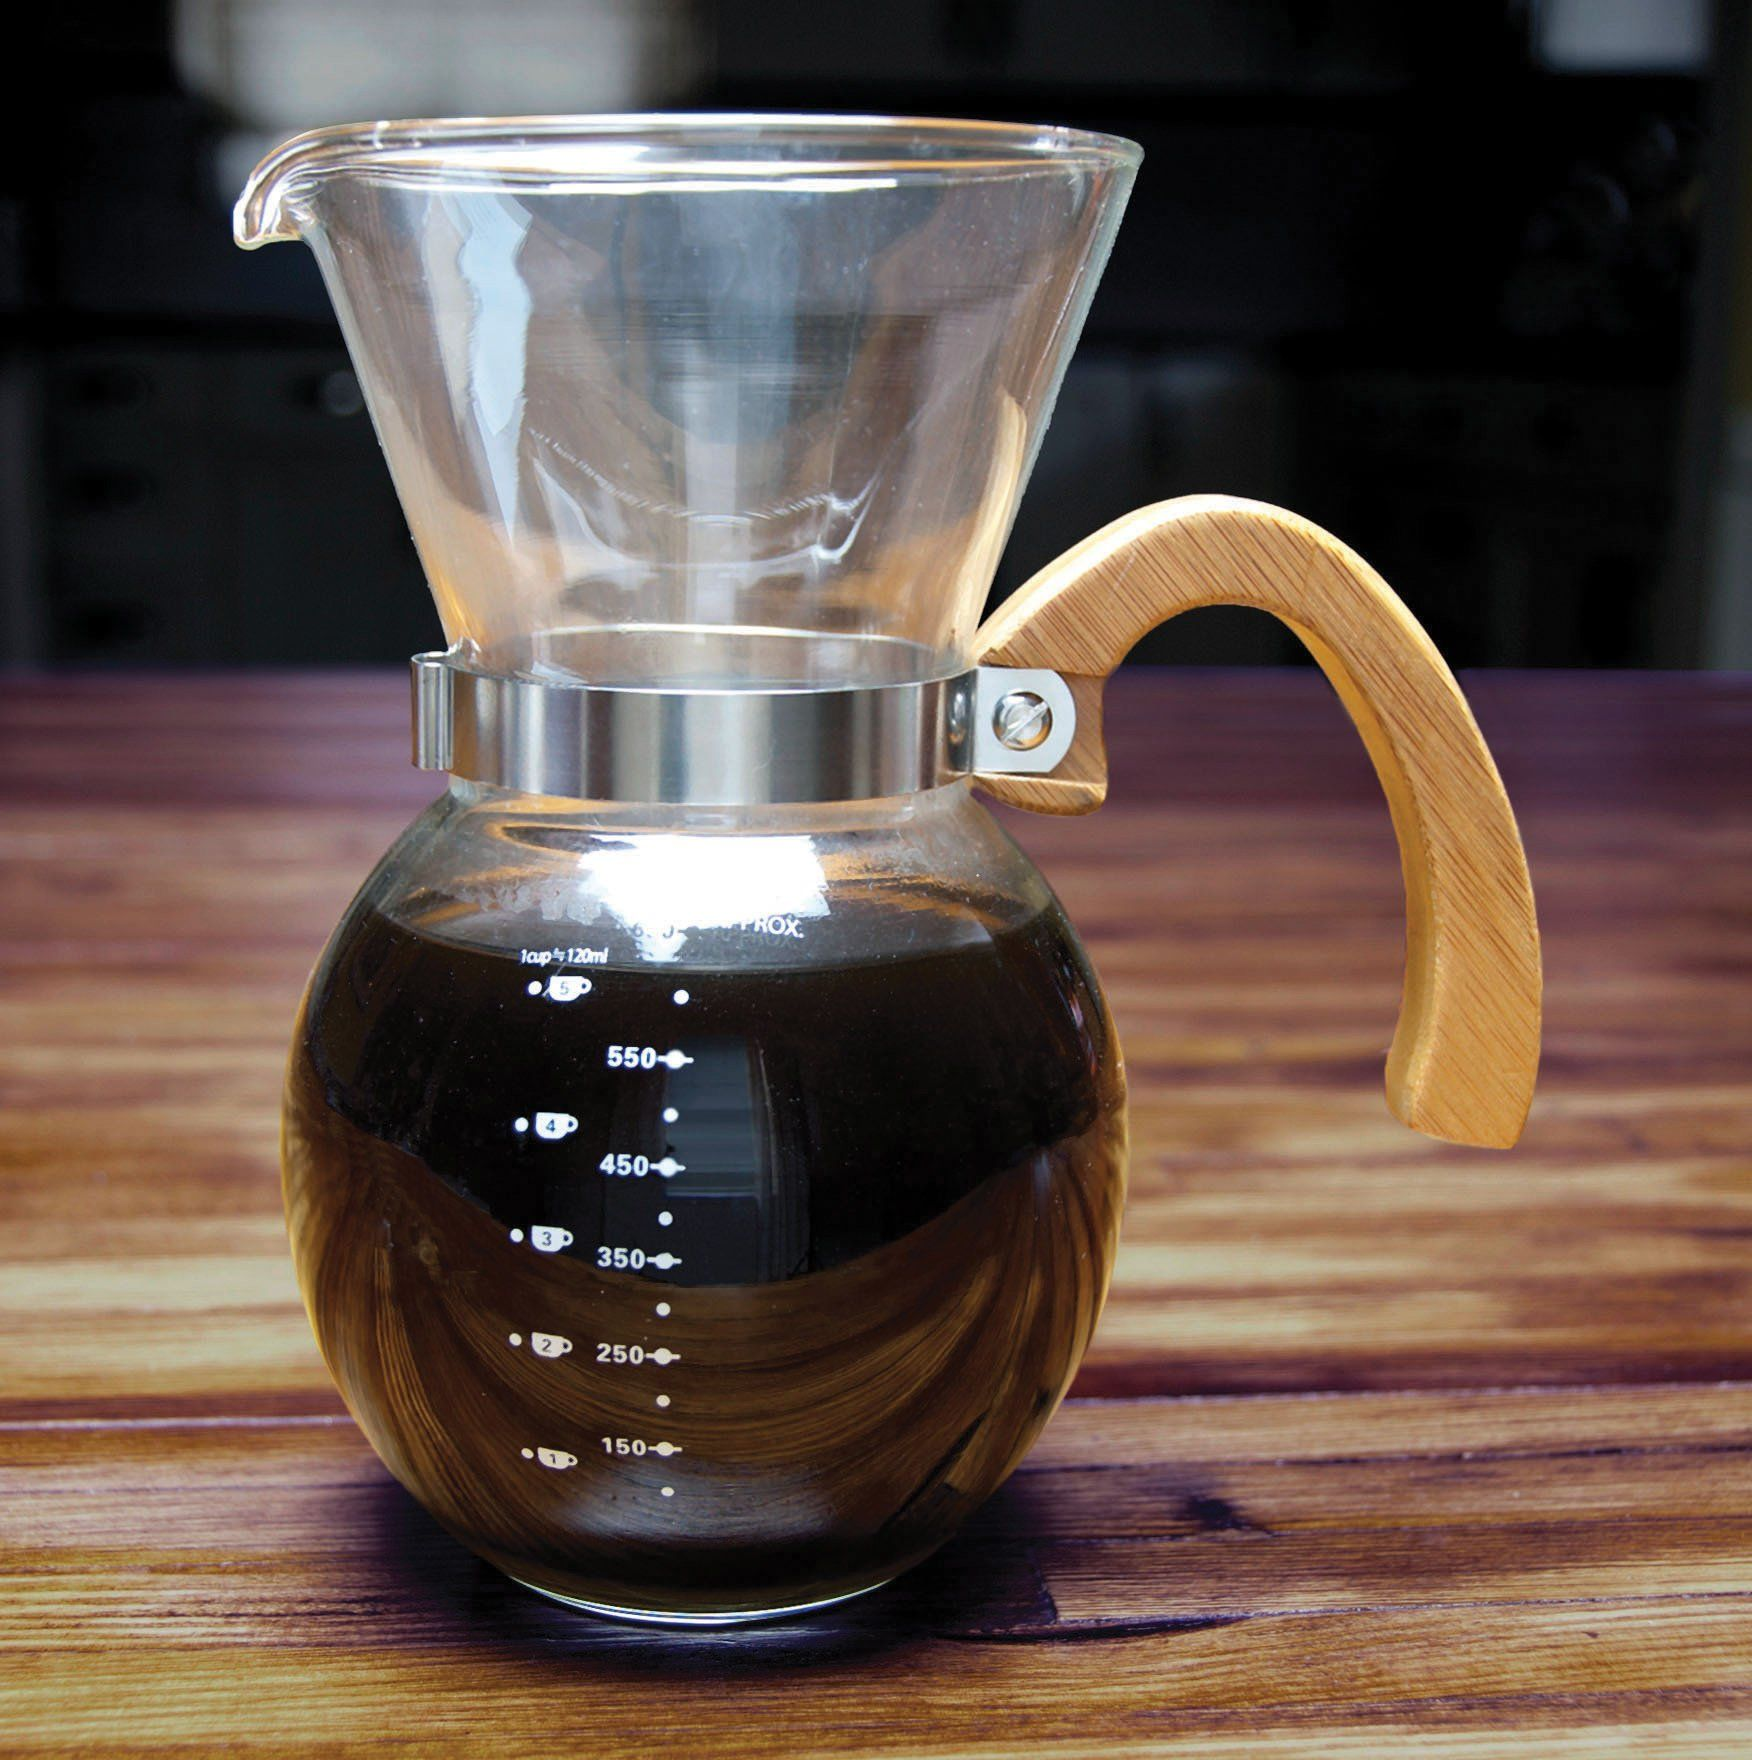 0328250b0e0 HIC Harold Import Co. 43781 PourOver Coffee Maker Borosilicate Glass with  Bamboo Handle Stainless Steel Filter 4Servings 22Ounce Capacity -- You can  find ...